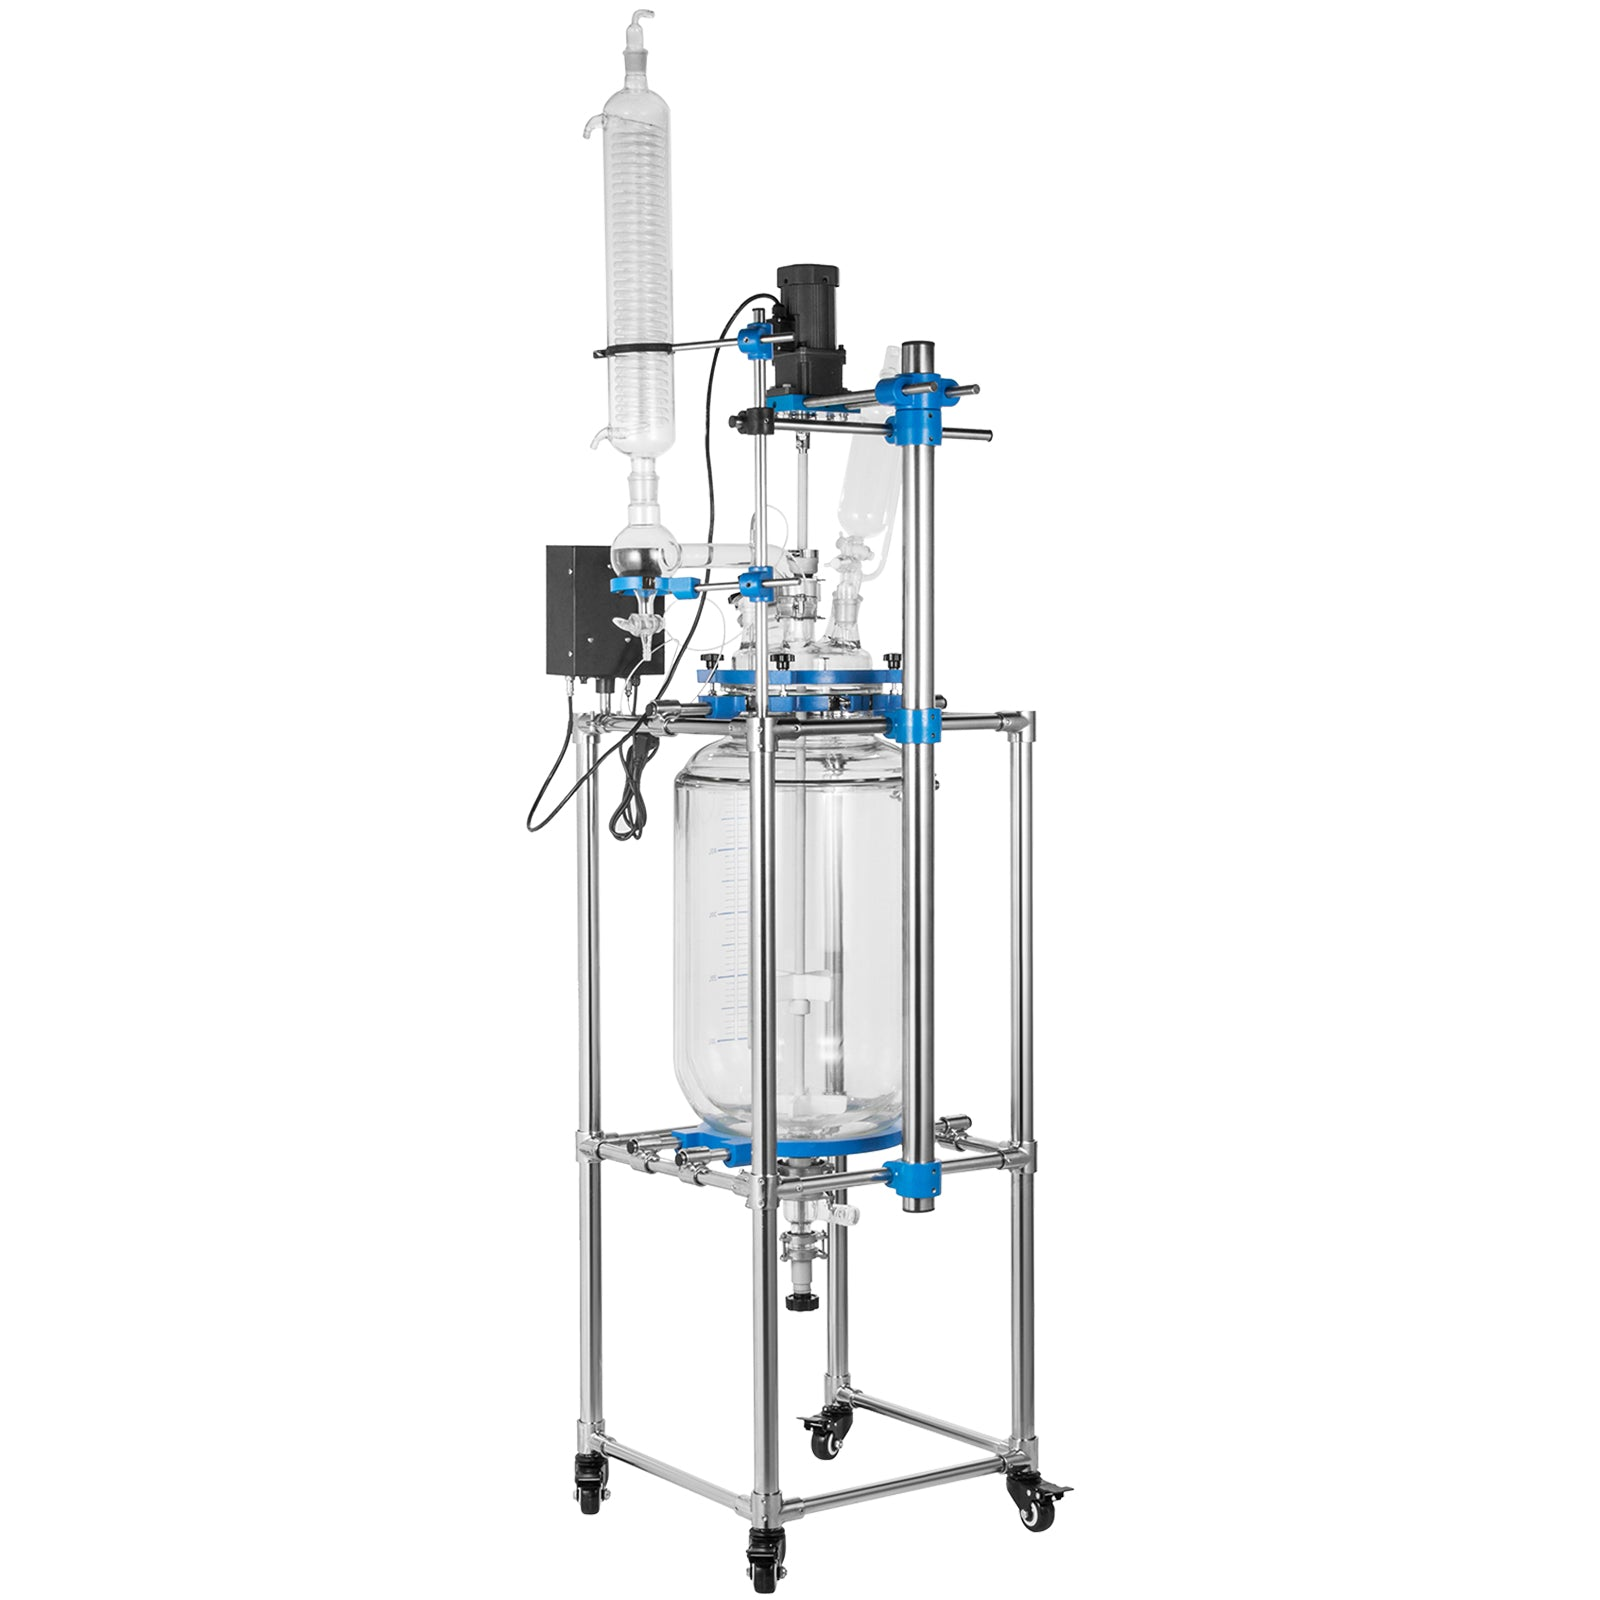 Vevorlab Jacketed Reactor Double Layer Glass Reactor 110v Reactor Vessel